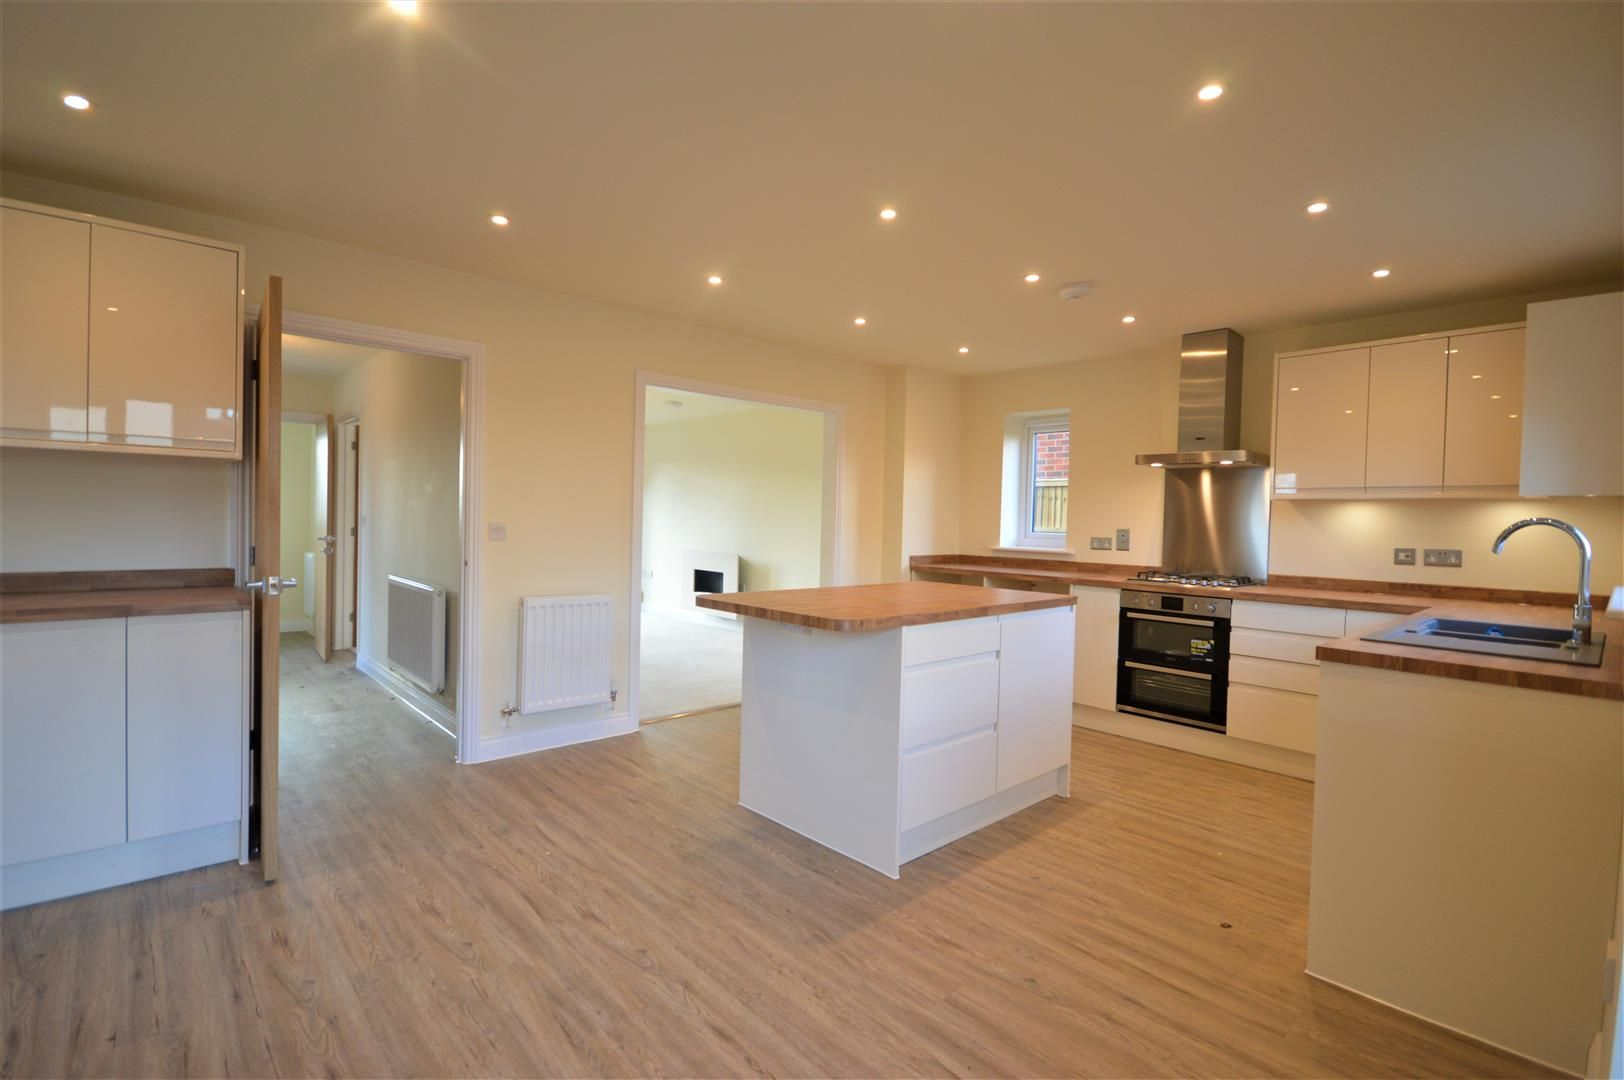 4 bed detached for sale in Kingsland  - Property Image 3